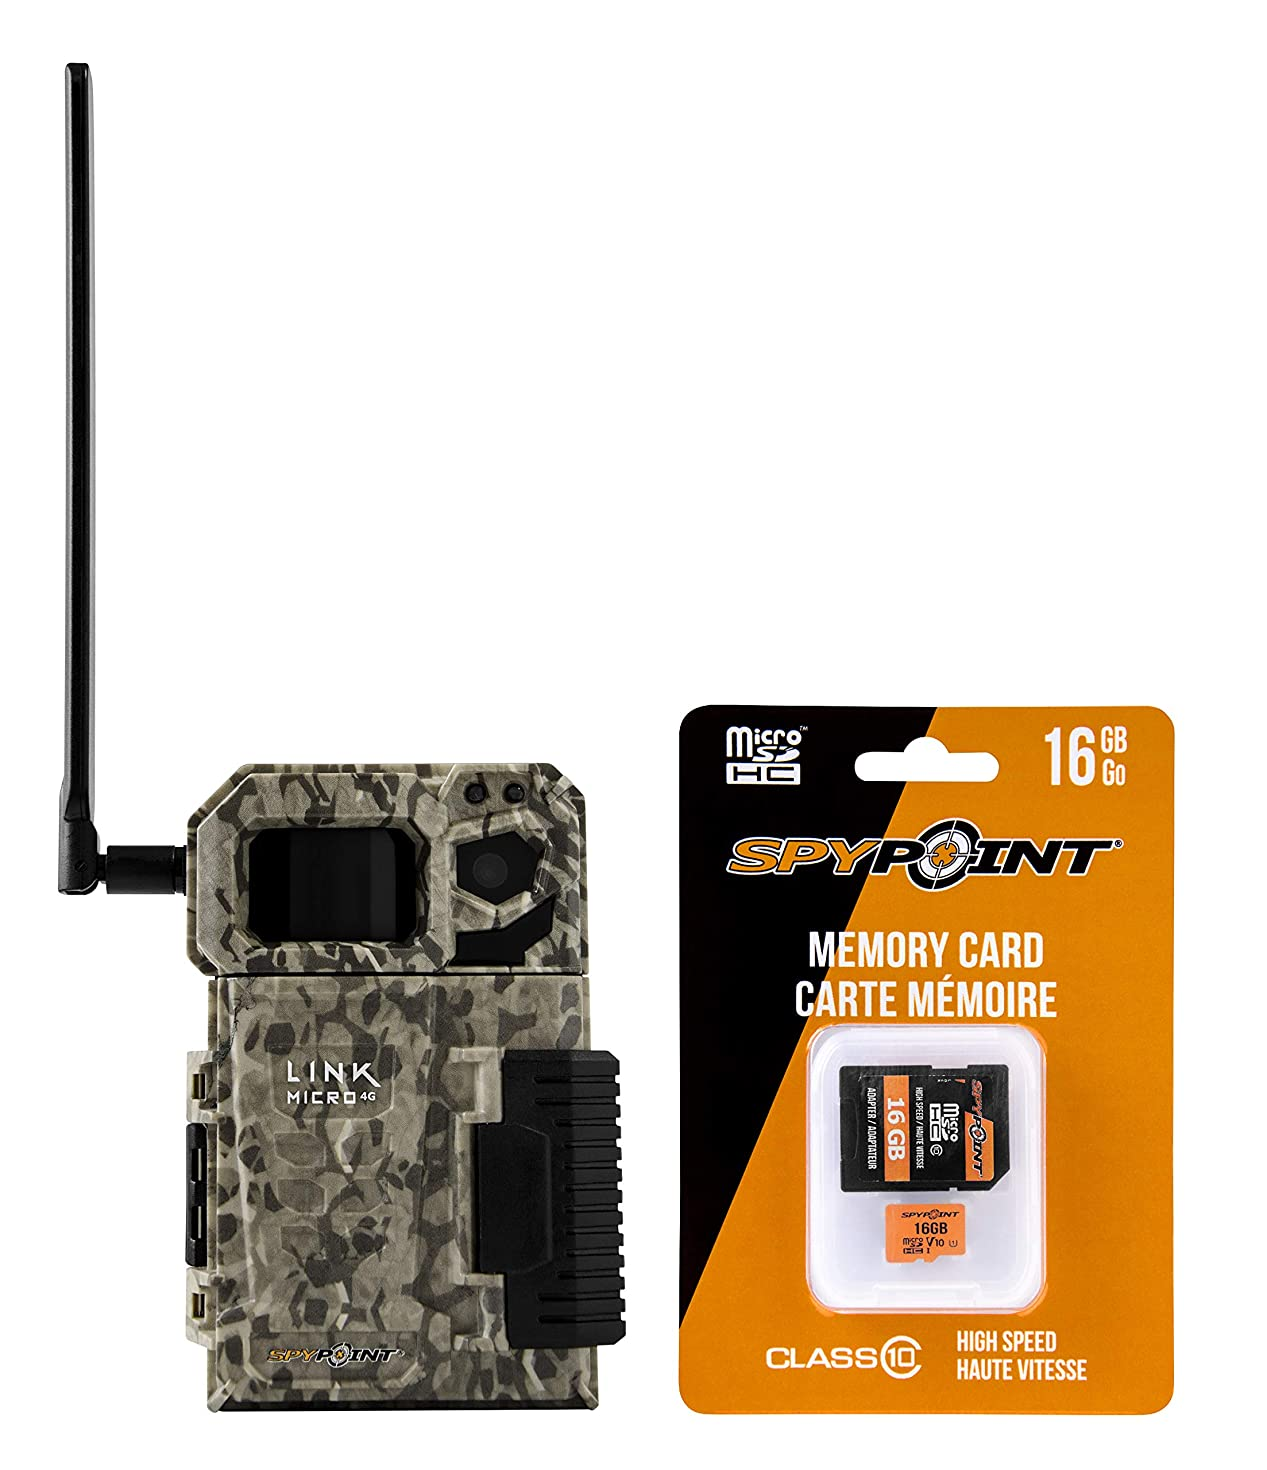 SPYPOINT Link Micro with 16GB MicroSD (Smallest on The Market!) Wireless/Cellular Trail Camera, Fast 4G Photo Transmission w/Preactivated SIM, Fully Configurable via App